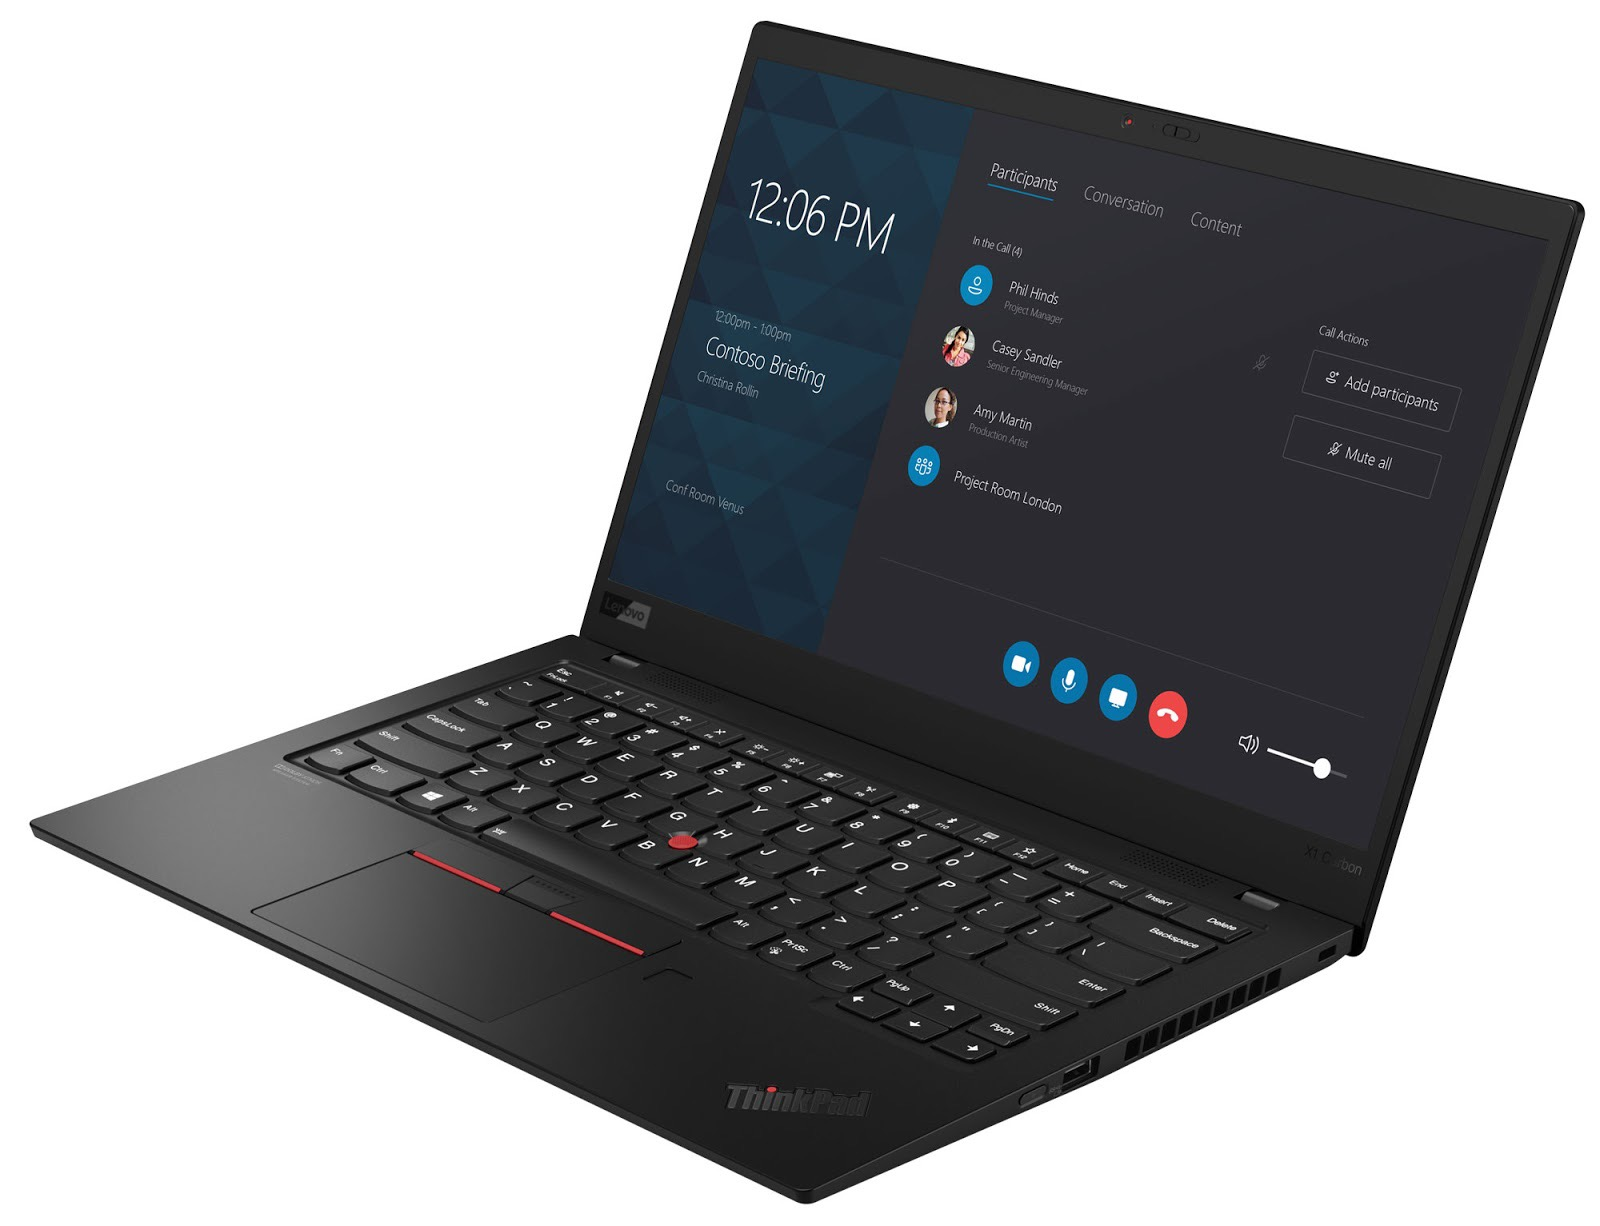 Фото 3. Ноутбук Lenovo ThinkPad X1 Carbon Gen 7 Black (20QD003CRT)